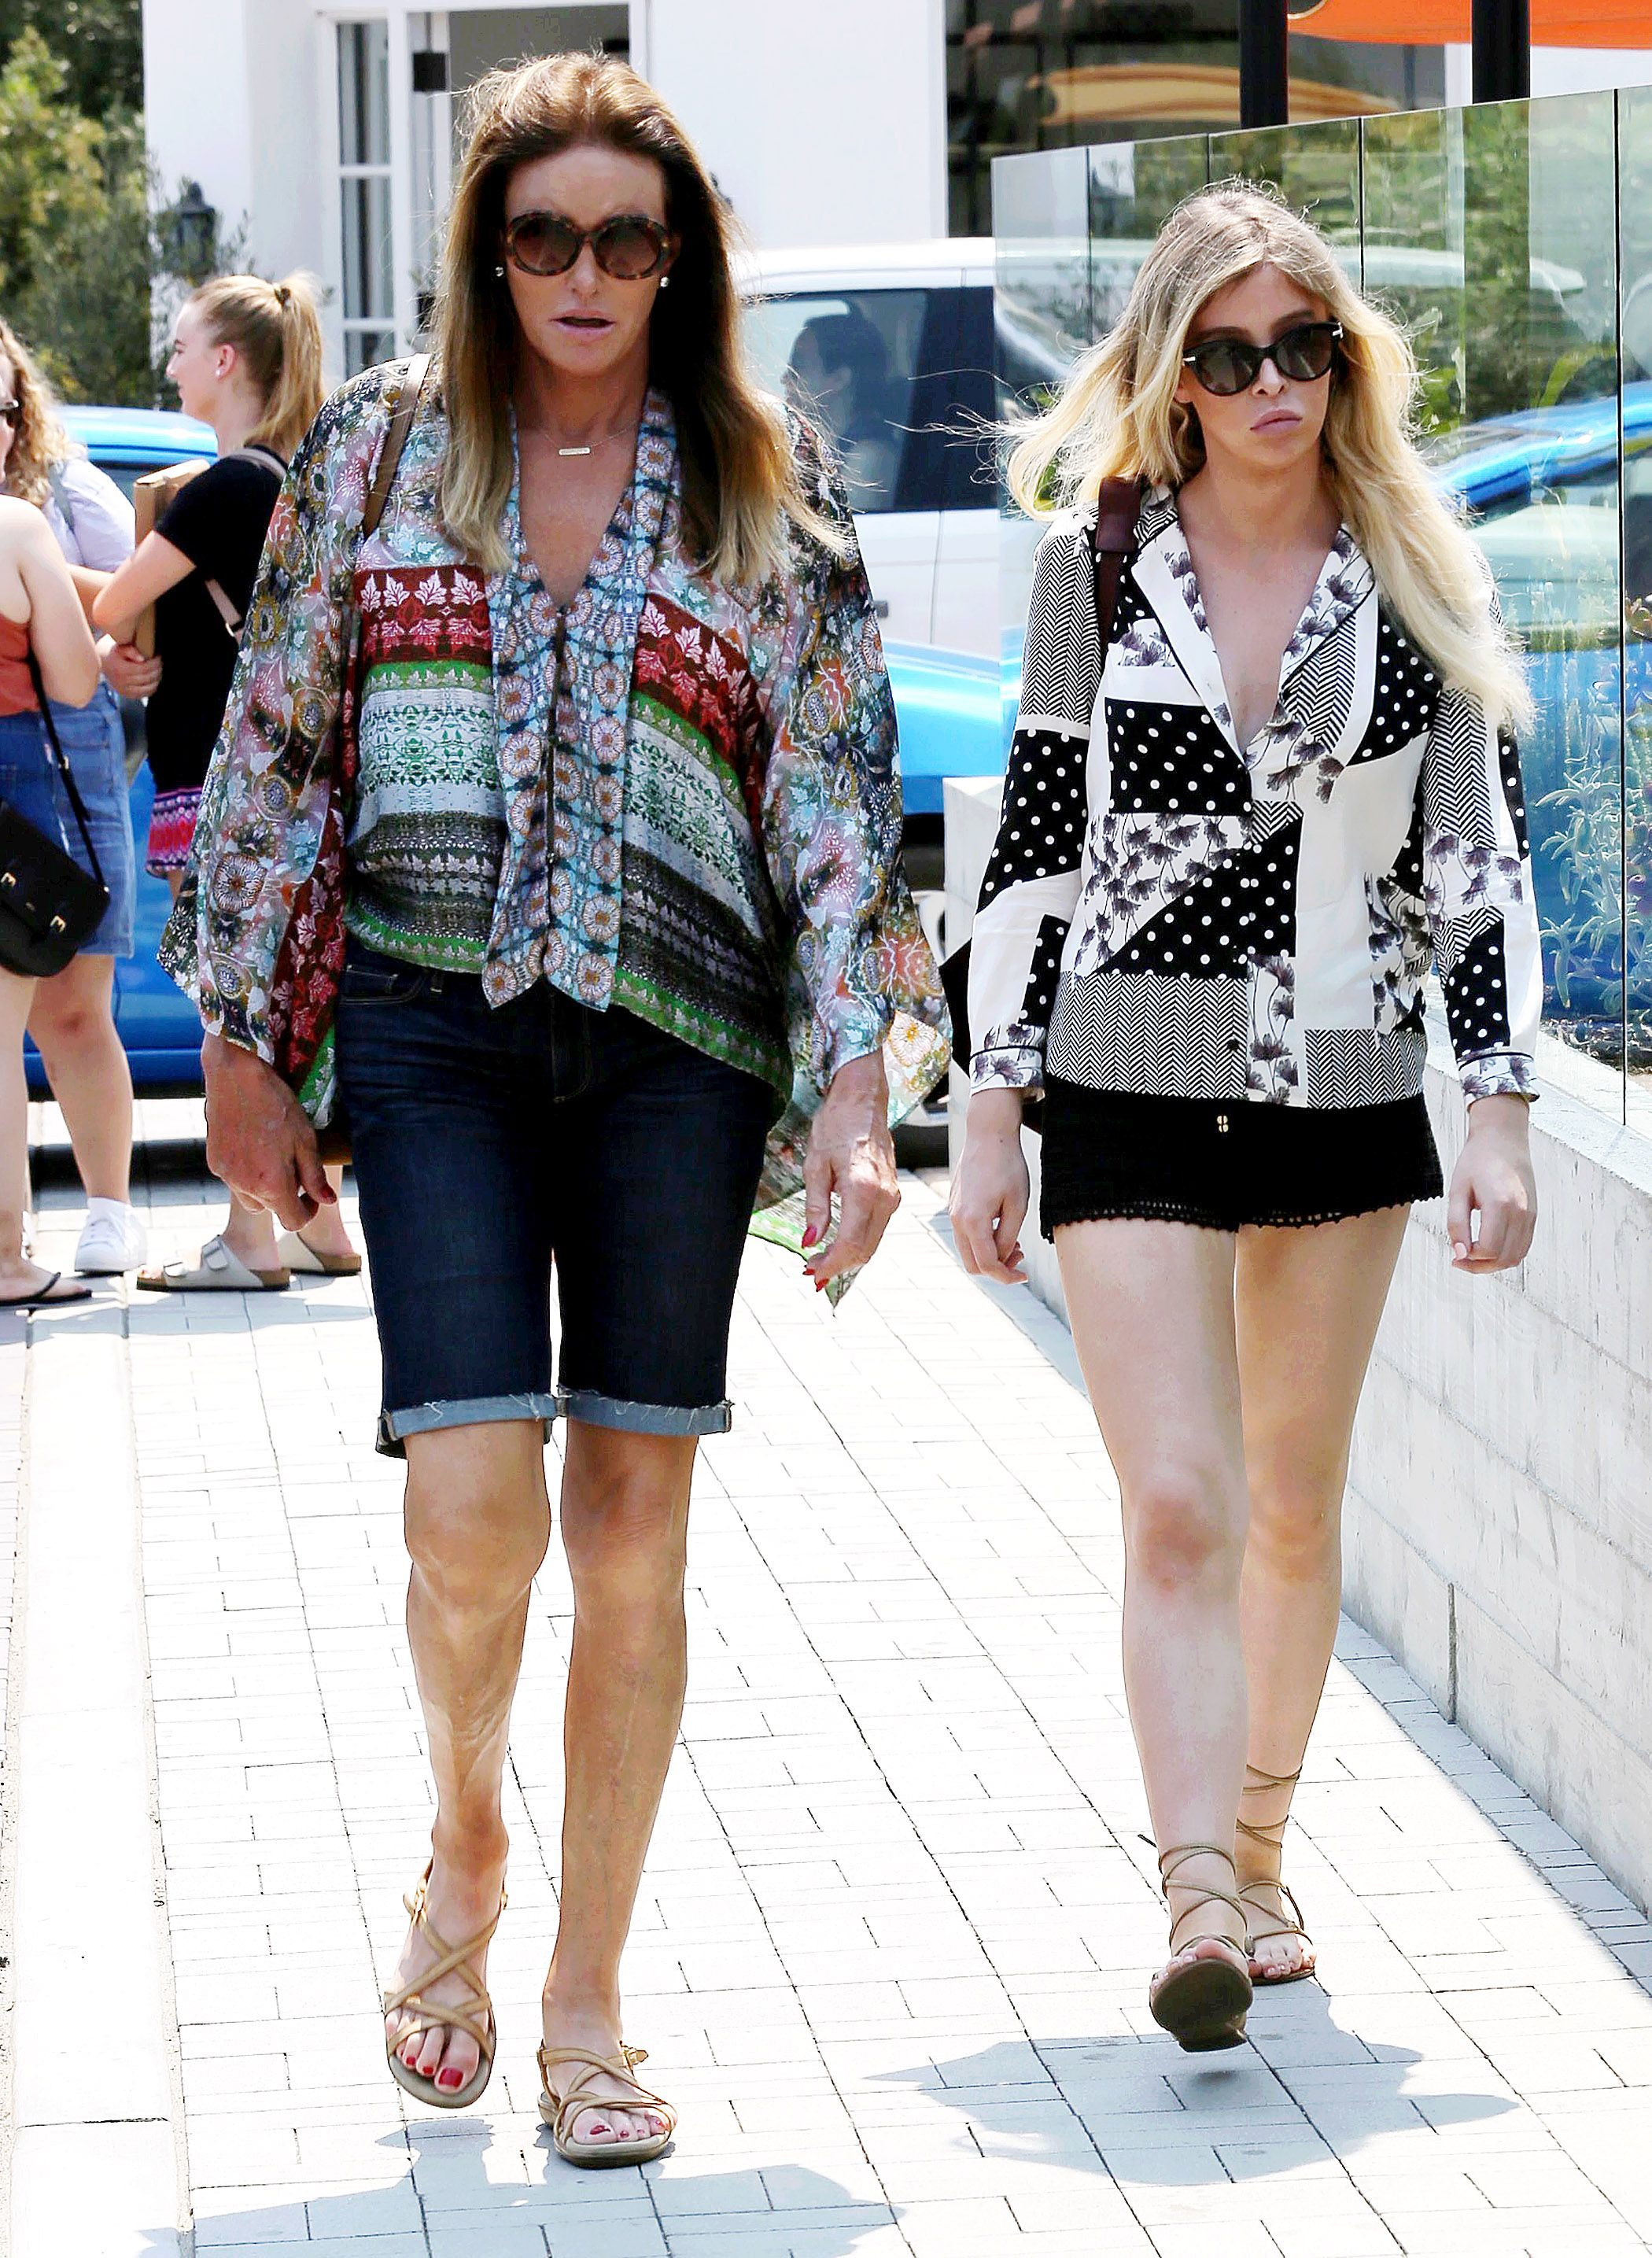 Caitlyn Jenner and Sophia Hutchins in Malibu, California on Sept. 2, 2017.